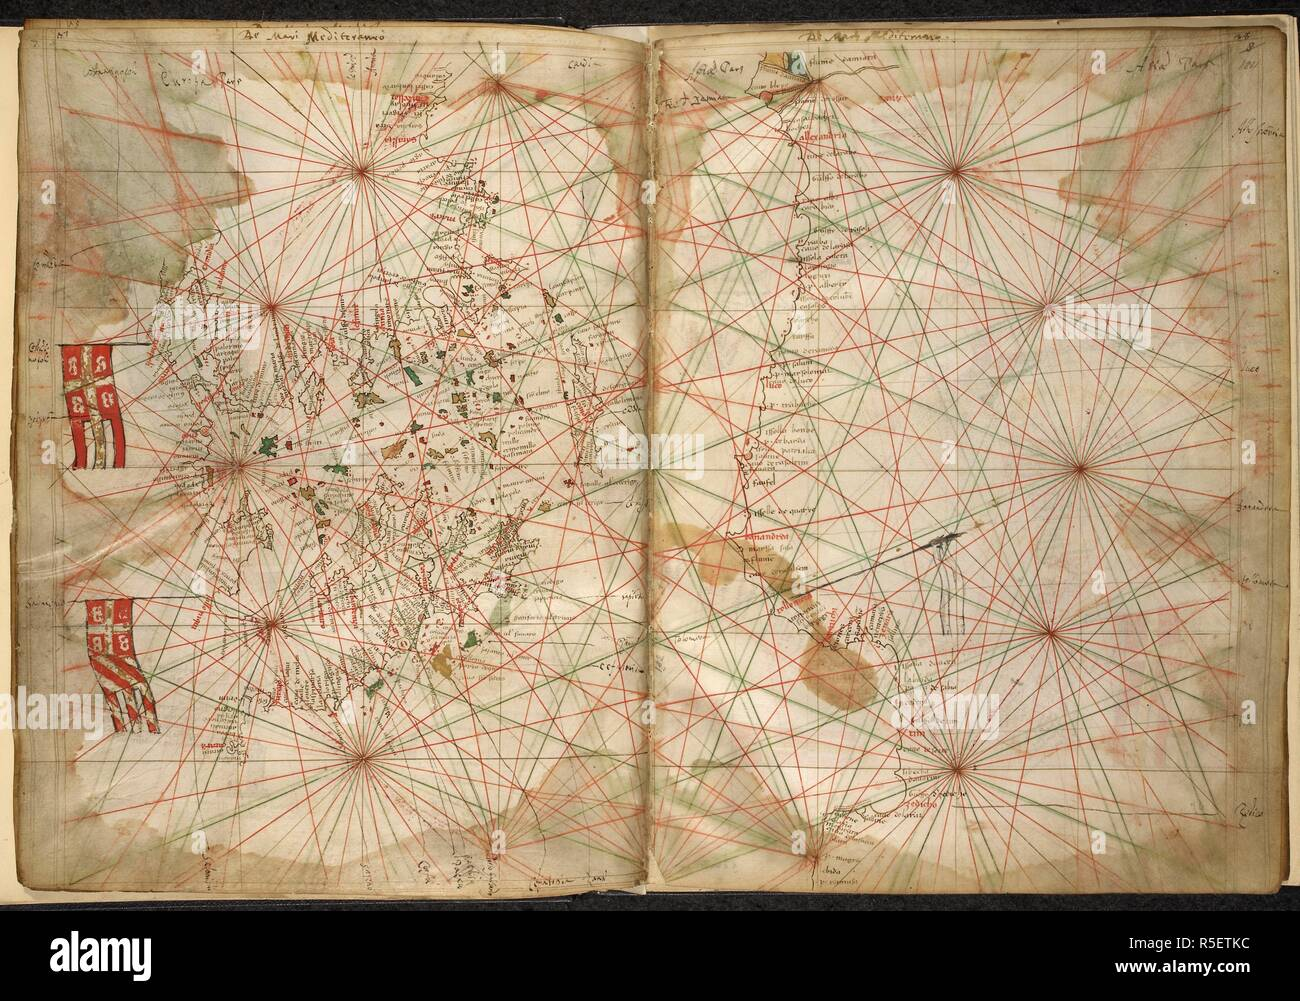 Portolan Chart Mediterranean High Resolution Stock Photography And Images Alamy